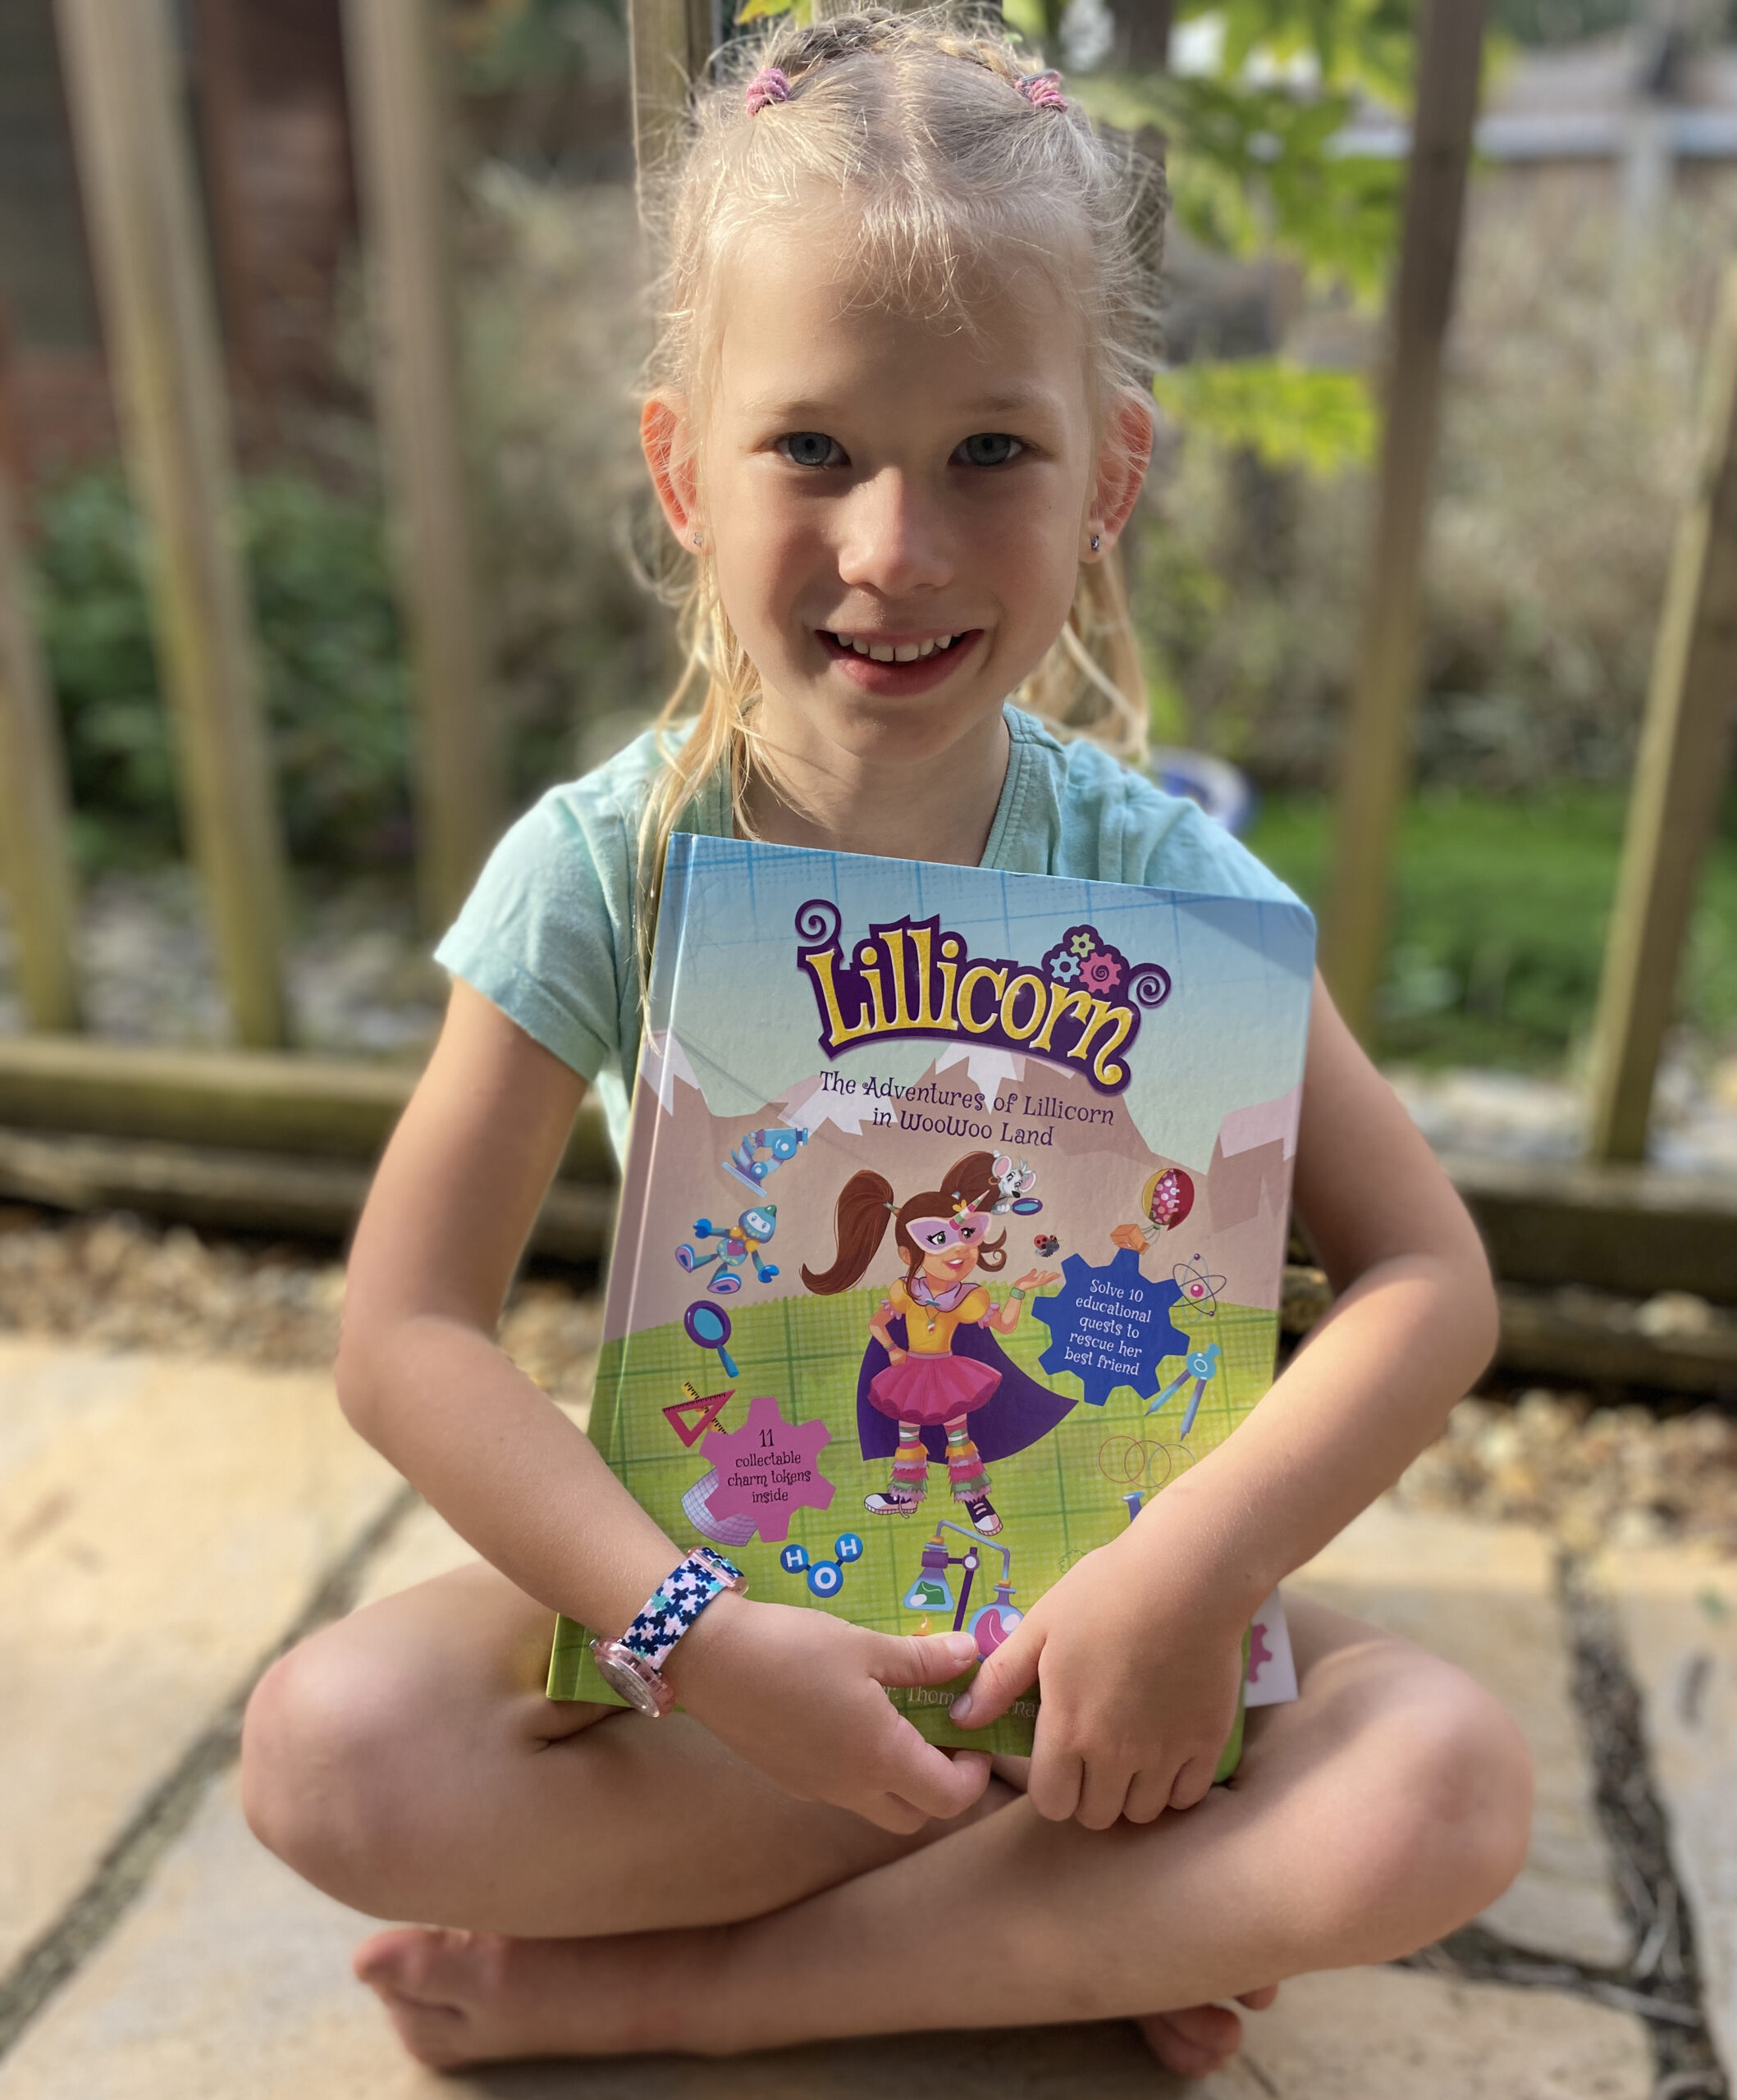 The Adventures of Lillicorn in WooWoo Land book review